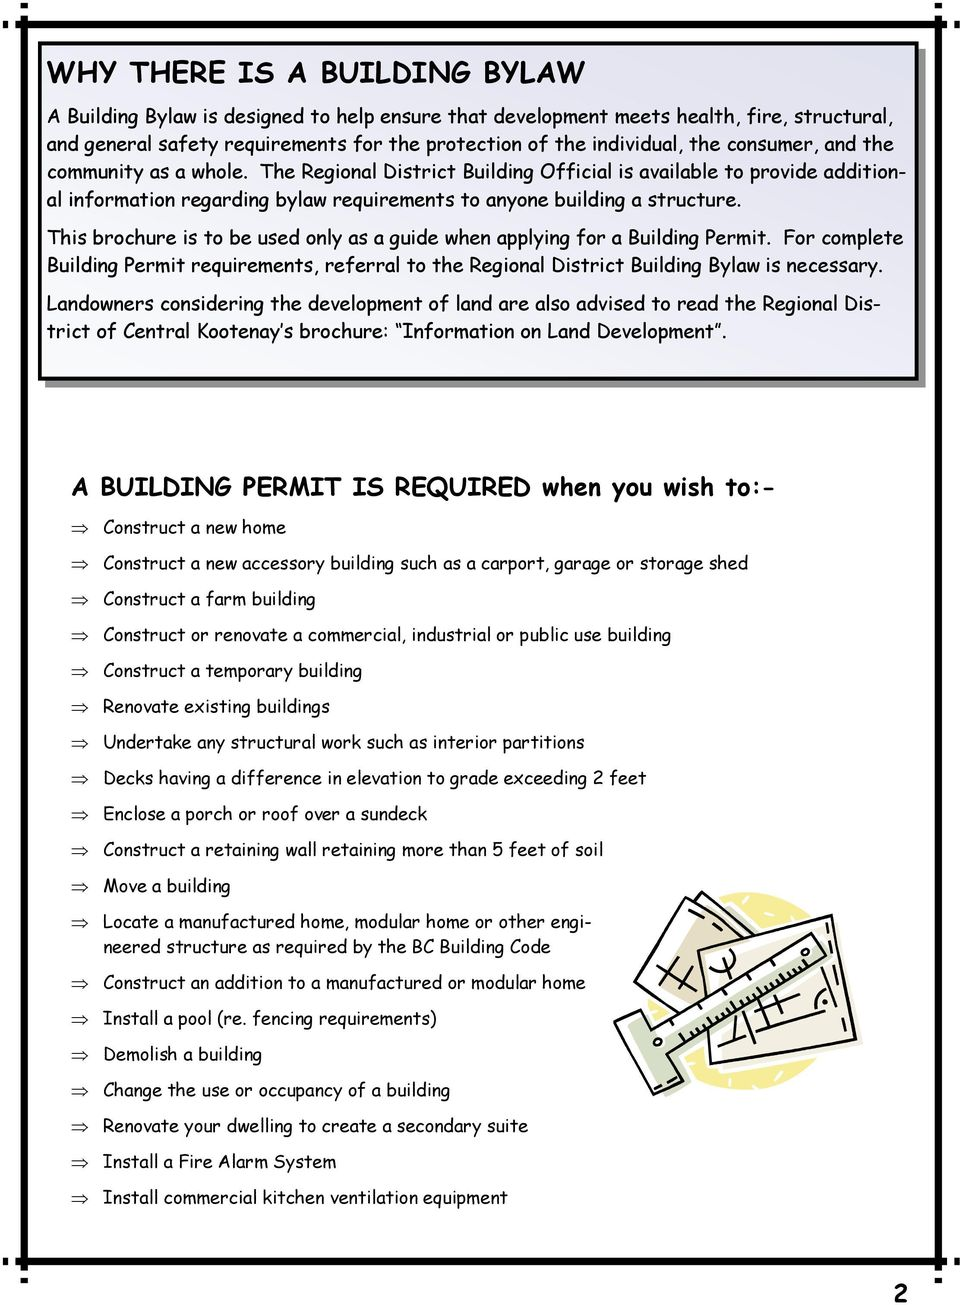 This brochure is to be used only as a guide when applying for a Building Permit. For complete Building Permit requirements, referral to the Regional District Building Bylaw is necessary.